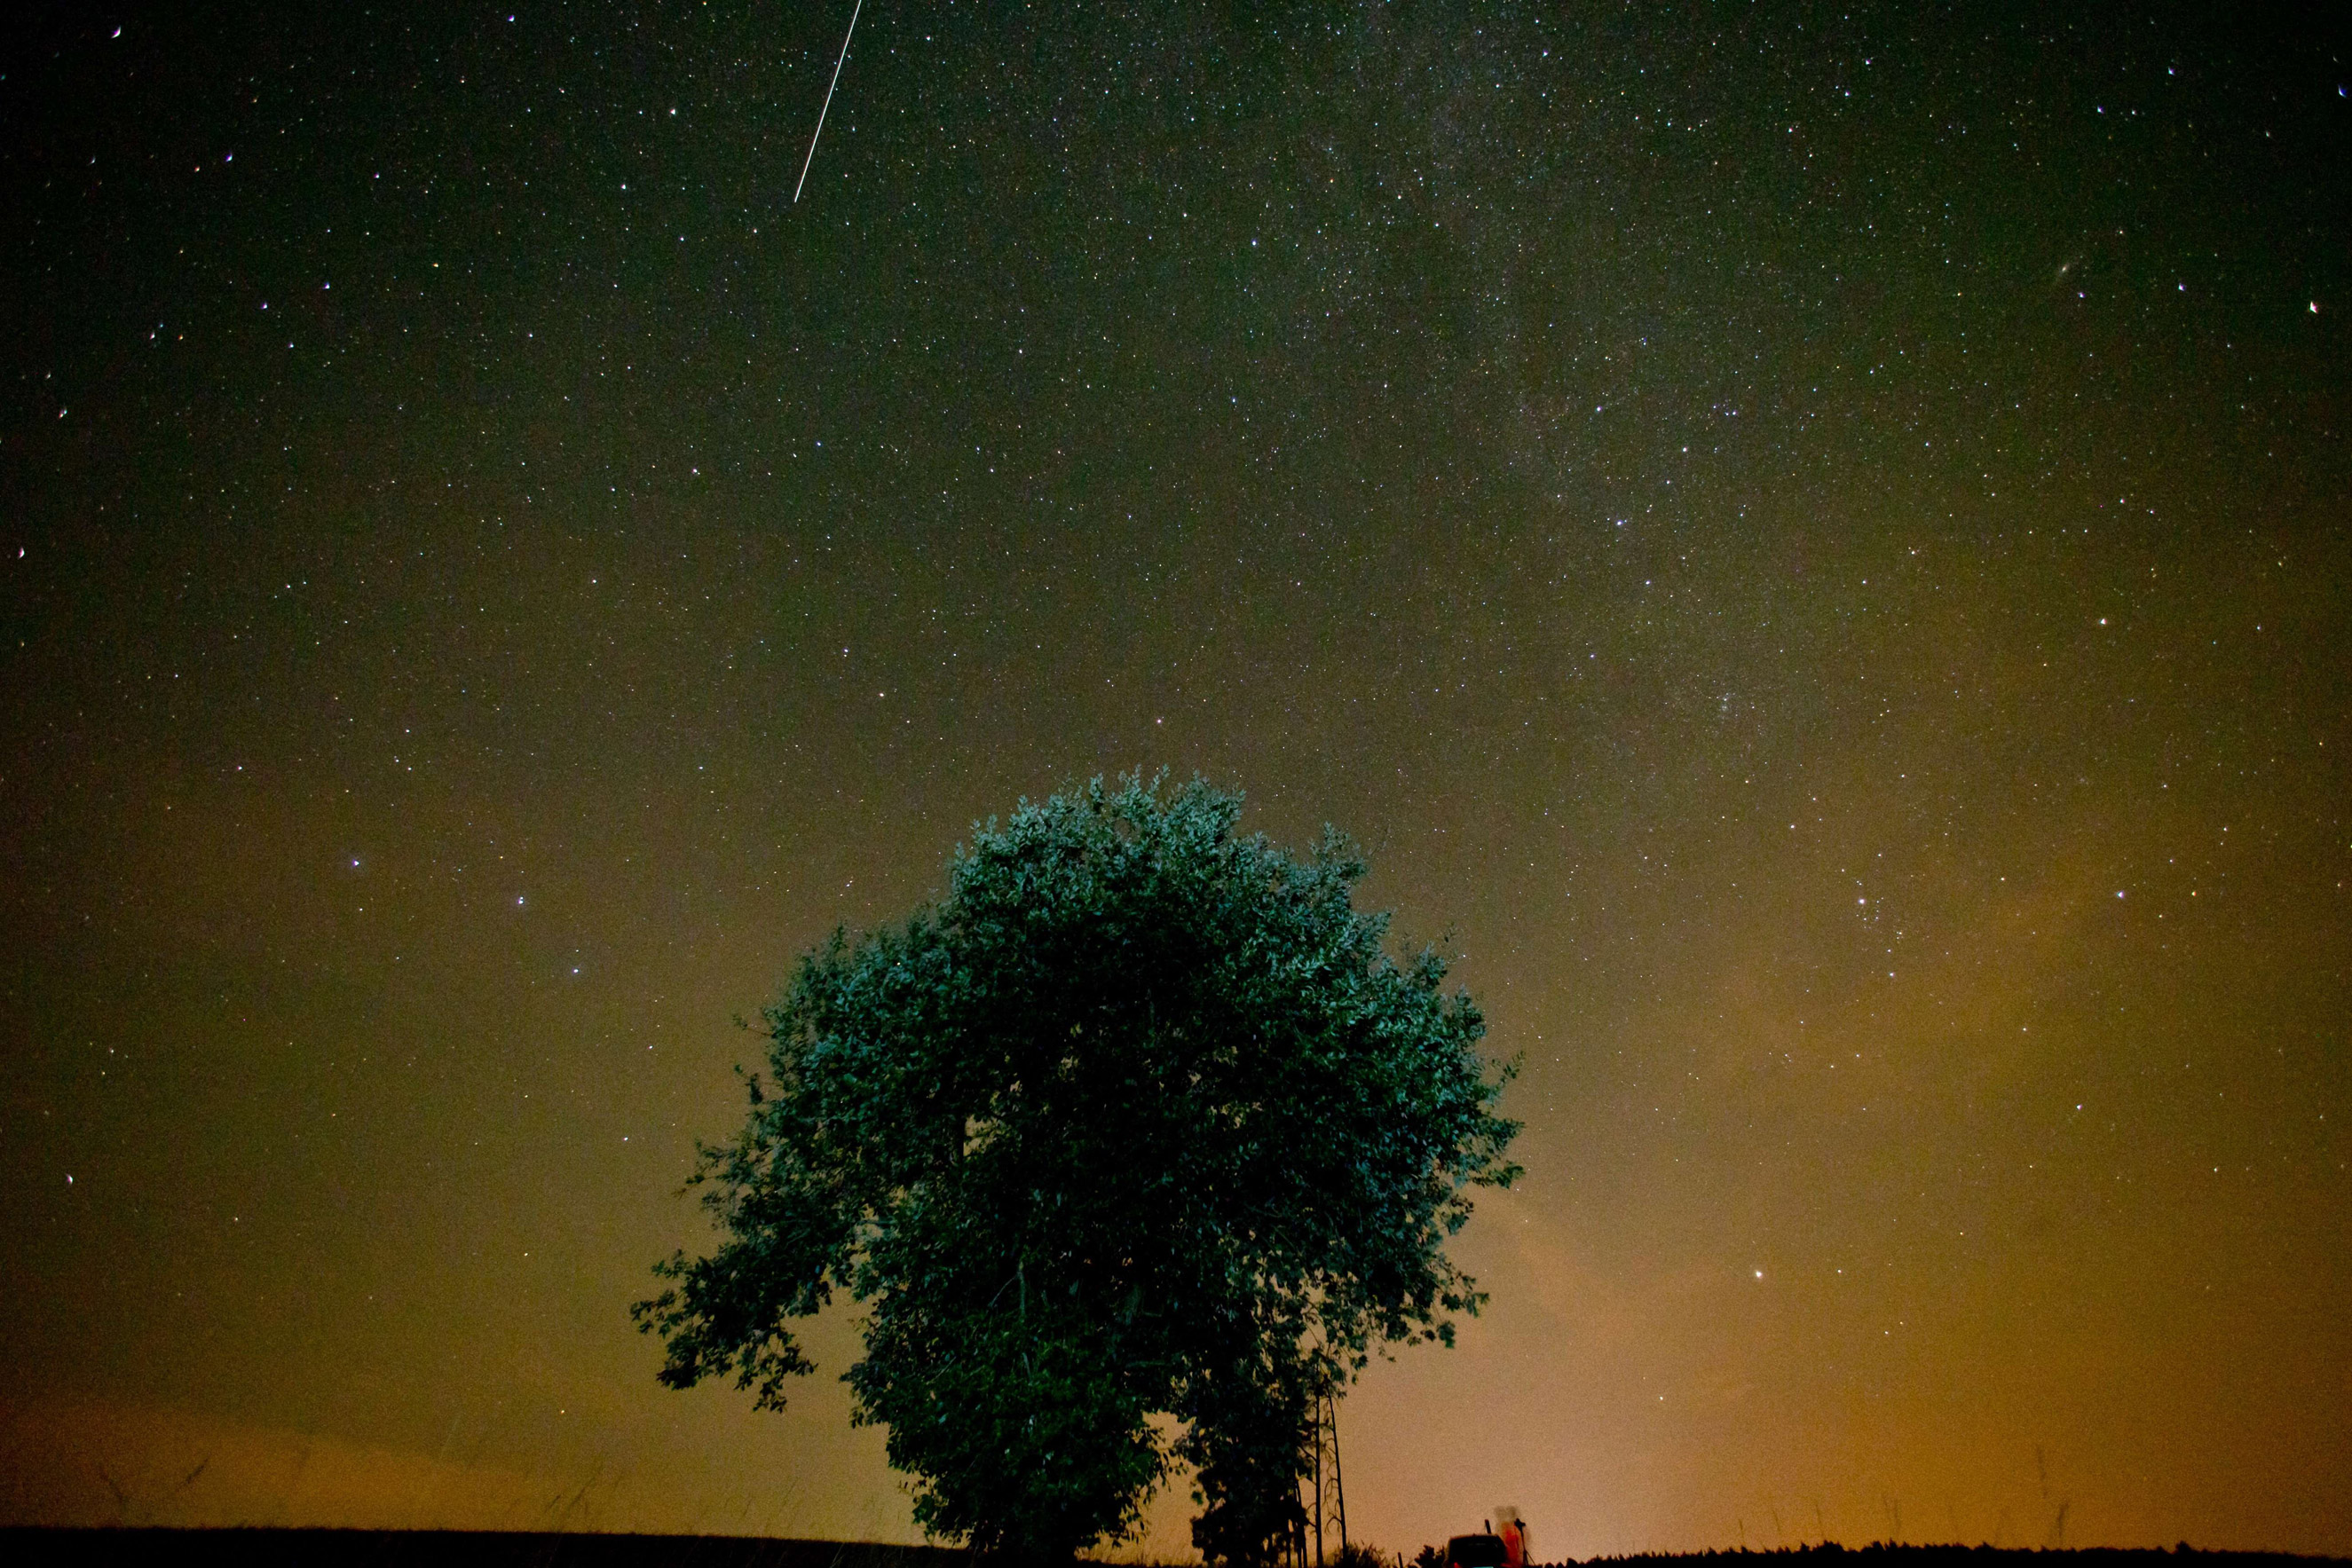 The Perseid meteor shower above Muenchsteinach, Germany on Aug. 13, 2015.